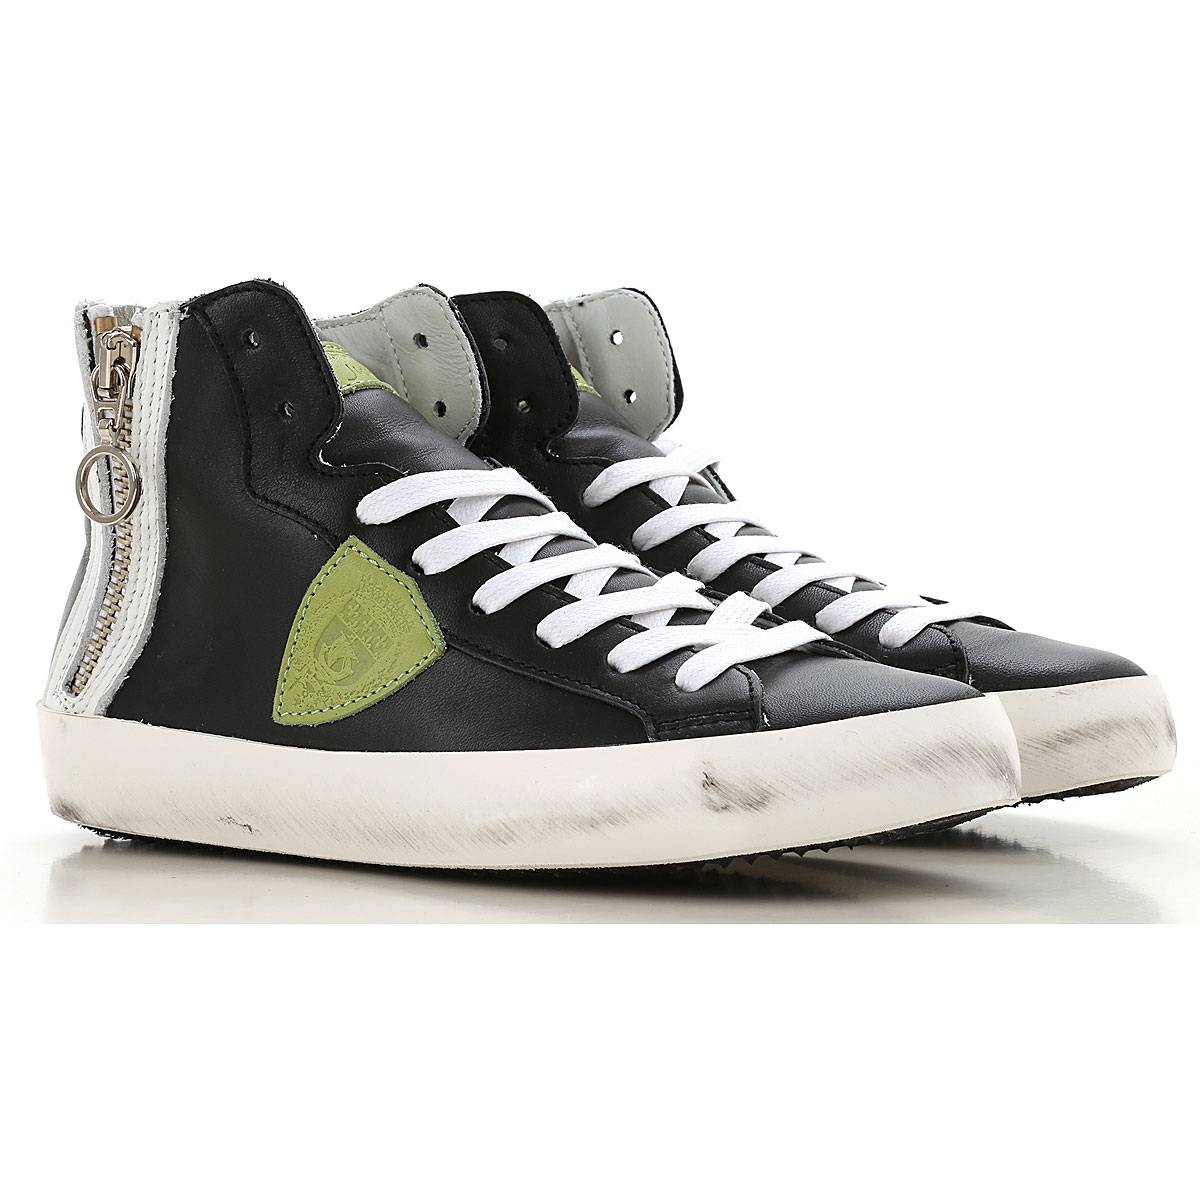 Image of Philippe Model Sneakers, Black, Calf Leather, 2017, 24 25 26 27 28 29 30 31 32 33 34 35